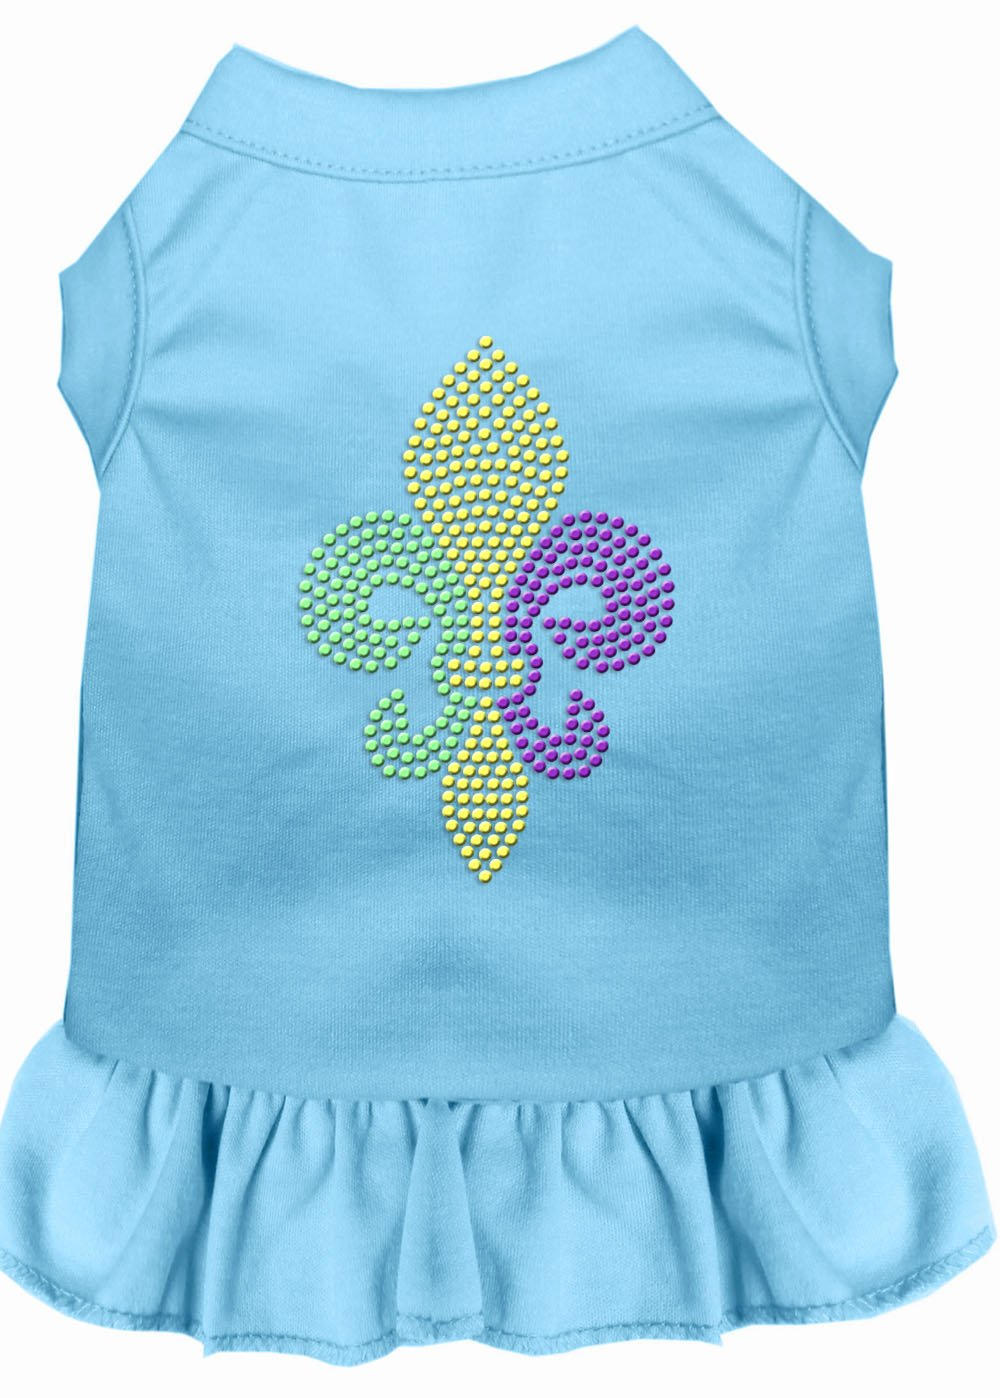 Mirage Pet Products 57-57 SMBBL bluee Mardi Gras Fleur De Lis Rhinestone Dress Baby, Small